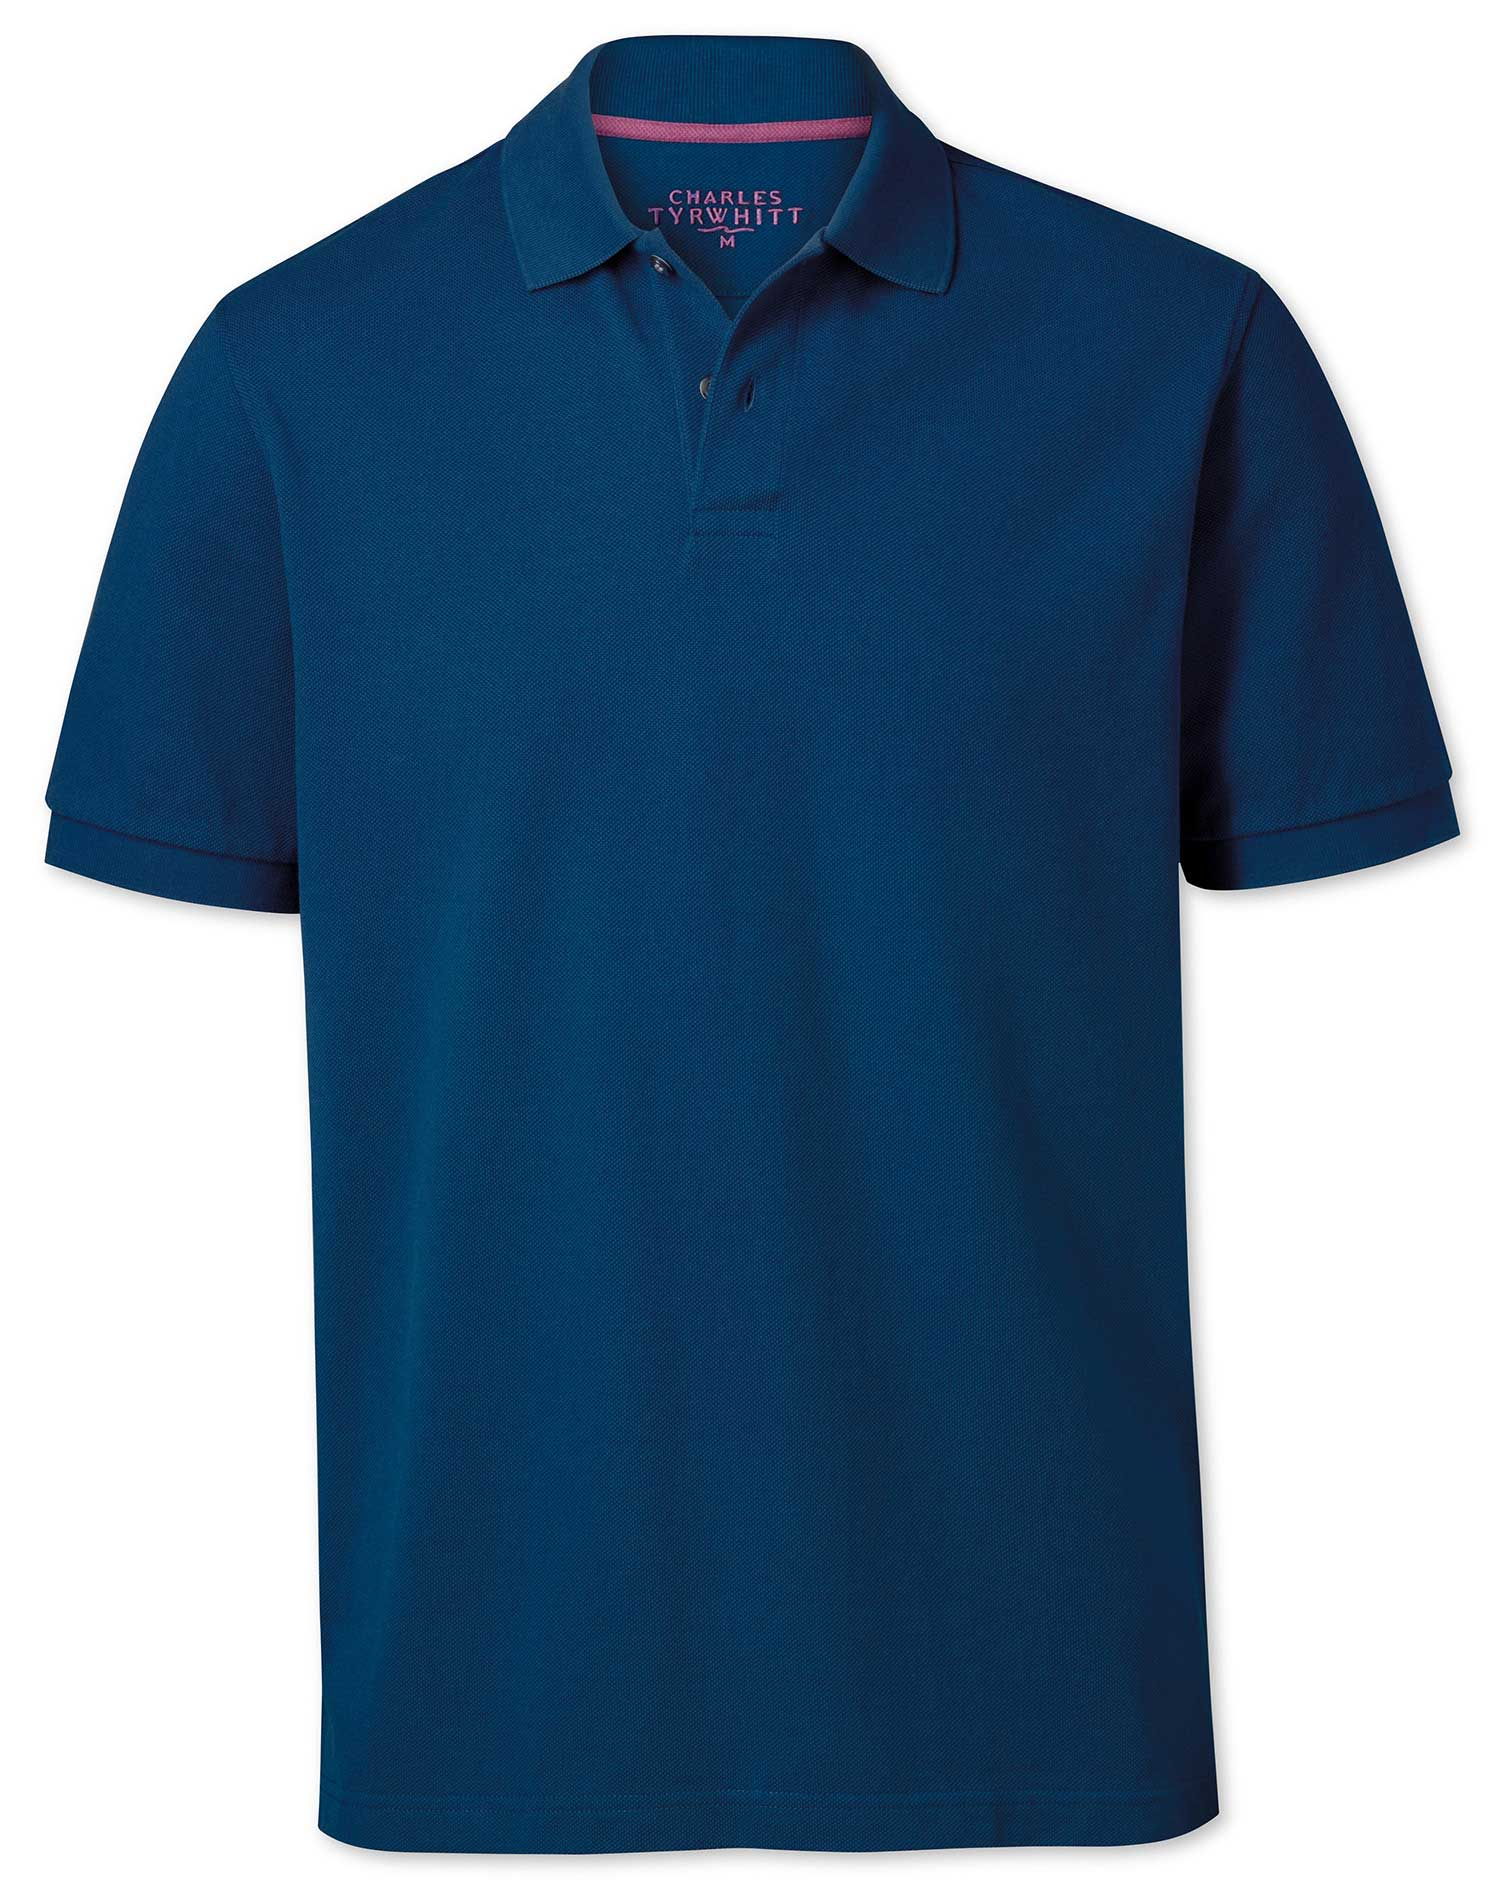 Classic Fit Blue Pique Cotton Polo Size Small by Charles Tyrwhitt